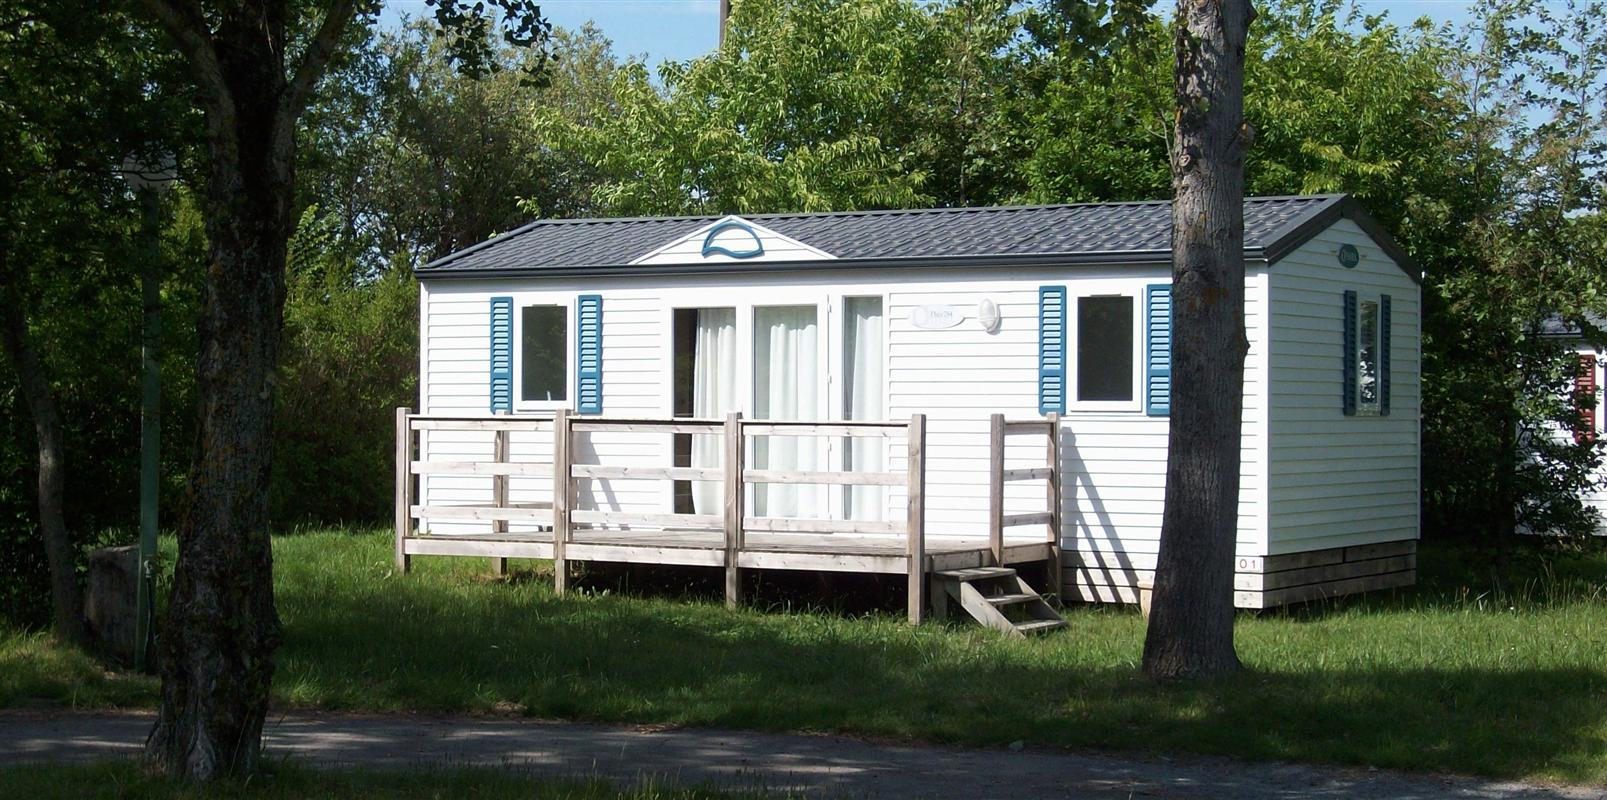 Location - Mobil-Home O'phea 784 29 M² 2 Chambres / Terrasse - Camping de Ker-Lay